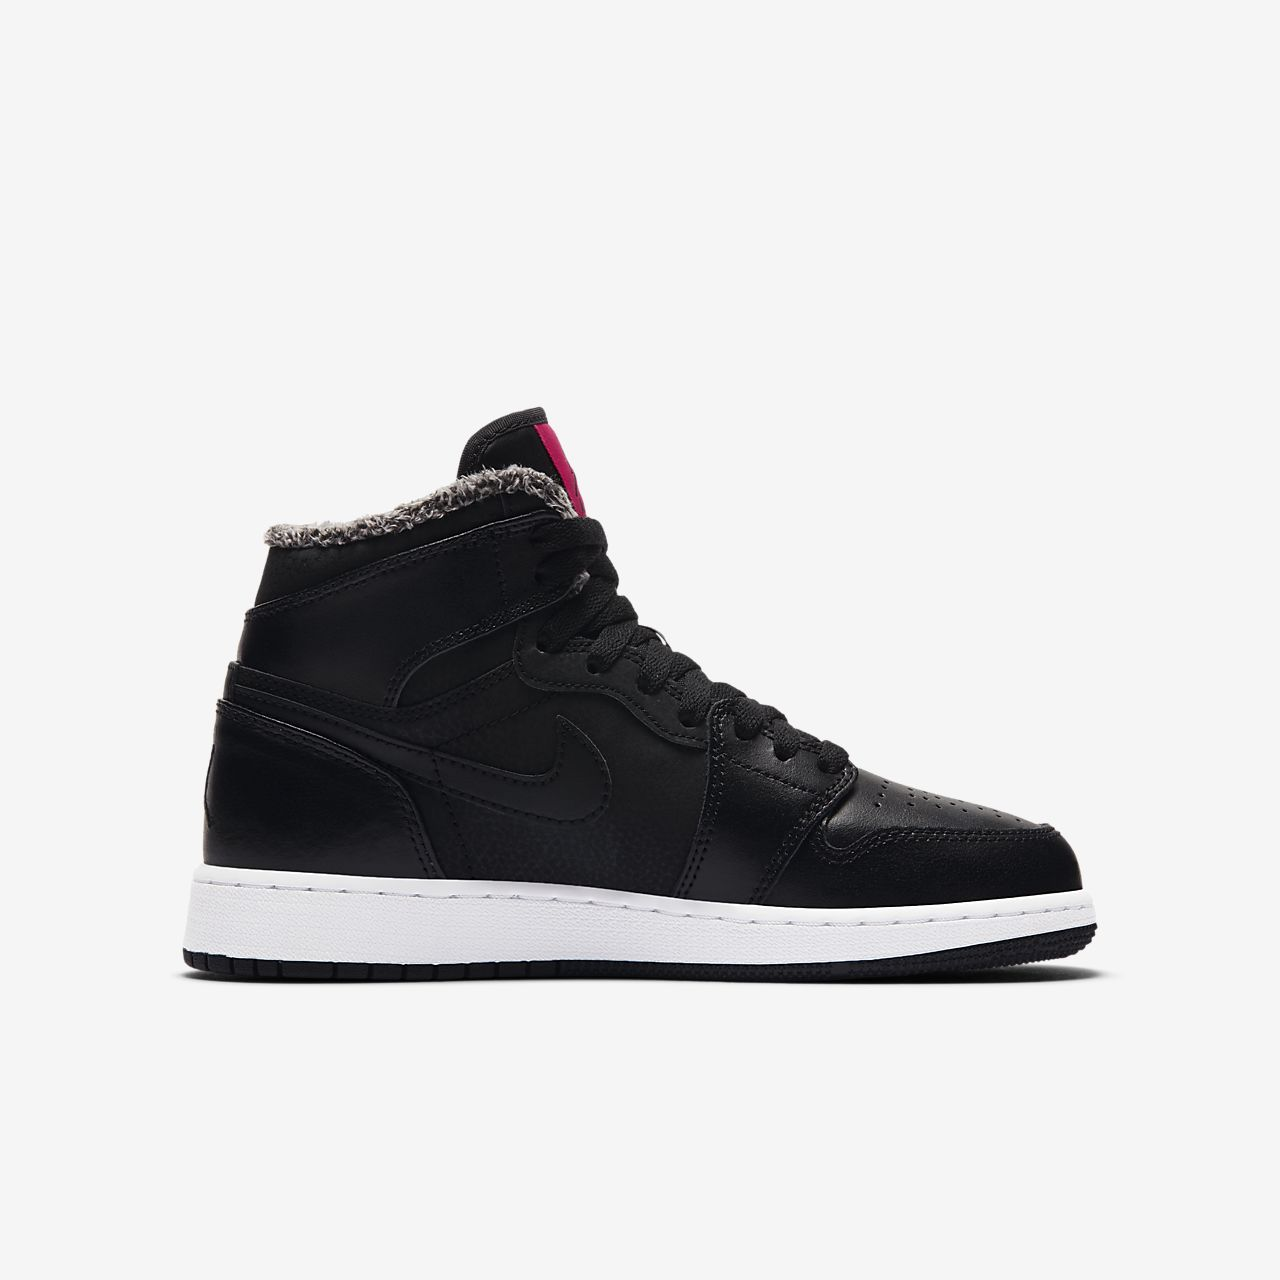 nike air jordans retro 1 nz